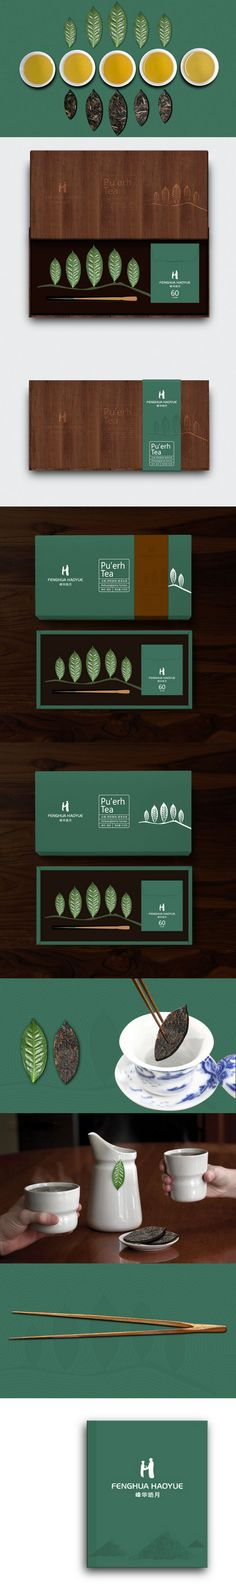 I would try this tea this is beautiful packaging PD Cool Packaging, Tea Packaging, Food Packaging Design, Brand Packaging, Branding Design, Tea Design, Tea Brands, Chocolate Packaging, Graphic Design Inspiration